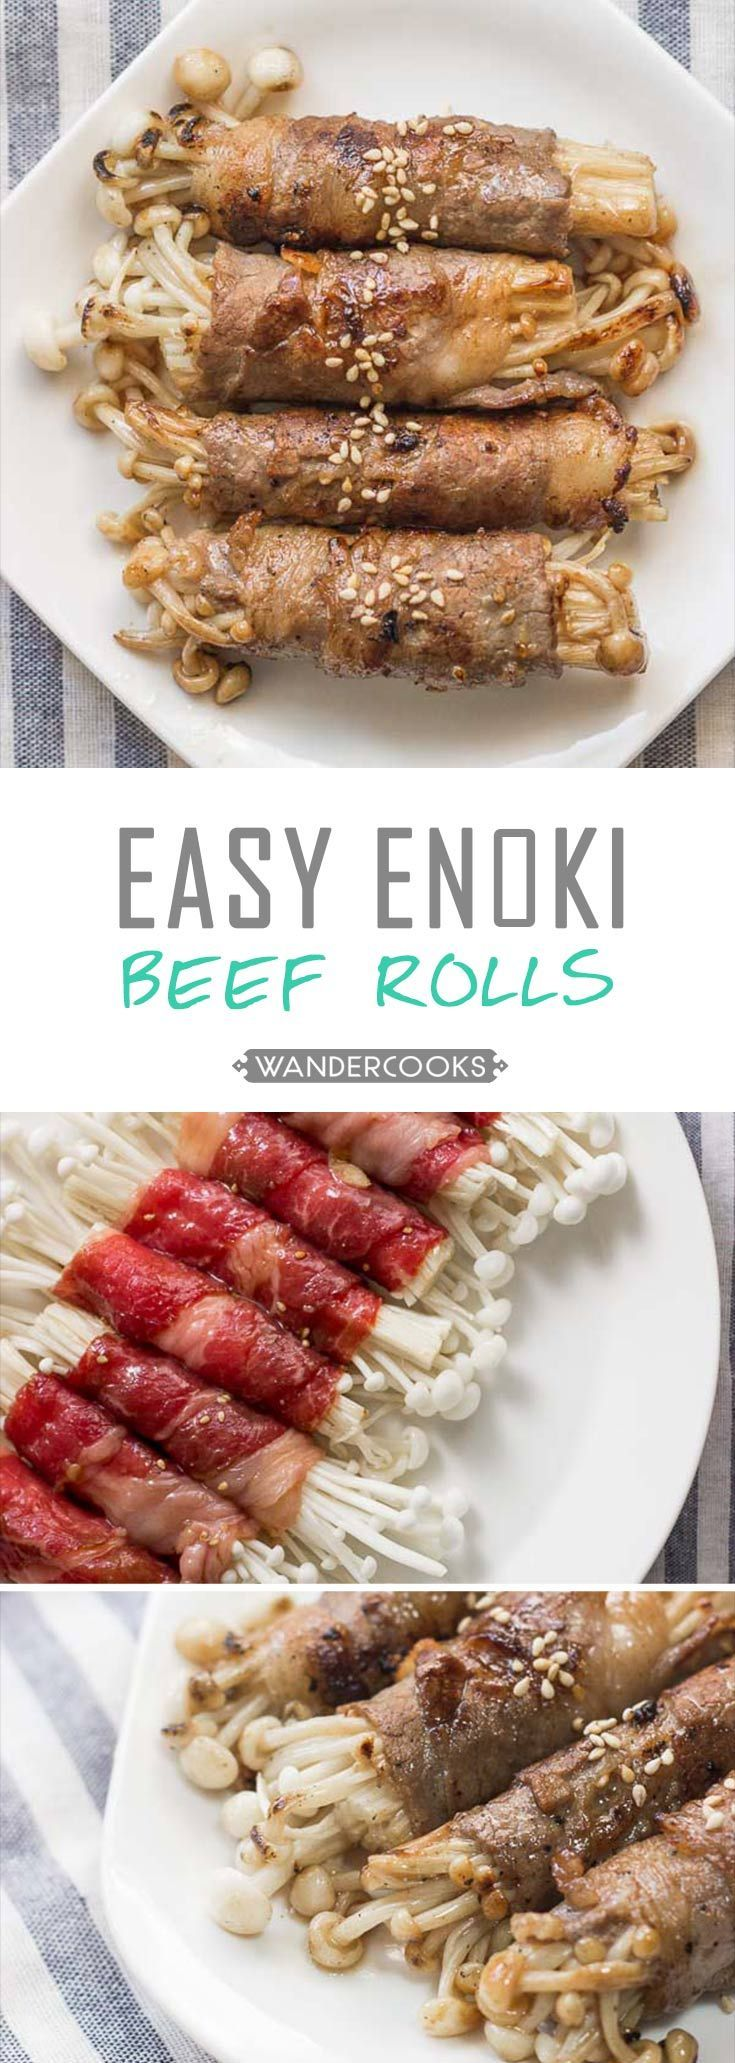 """""""Tender marinated beef meets chewy enoki mushrooms in these bite sized morsels that are guaranteed to disappear the instant they hit the table."""" 